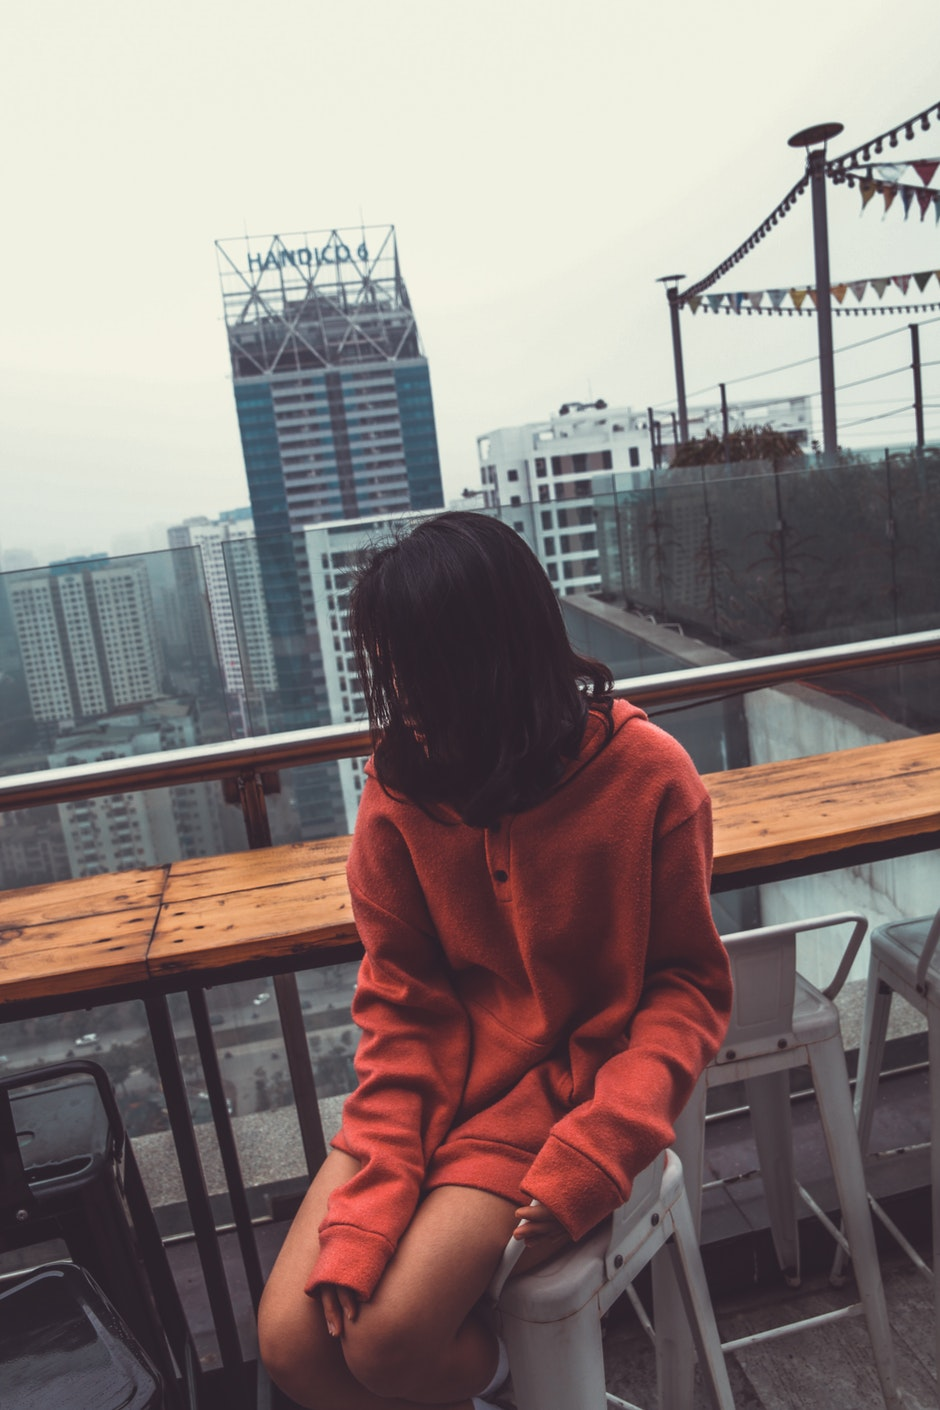 Photograph of Woman Wearing Red Pullover Hoodie Jacket Sitting on White Barstool